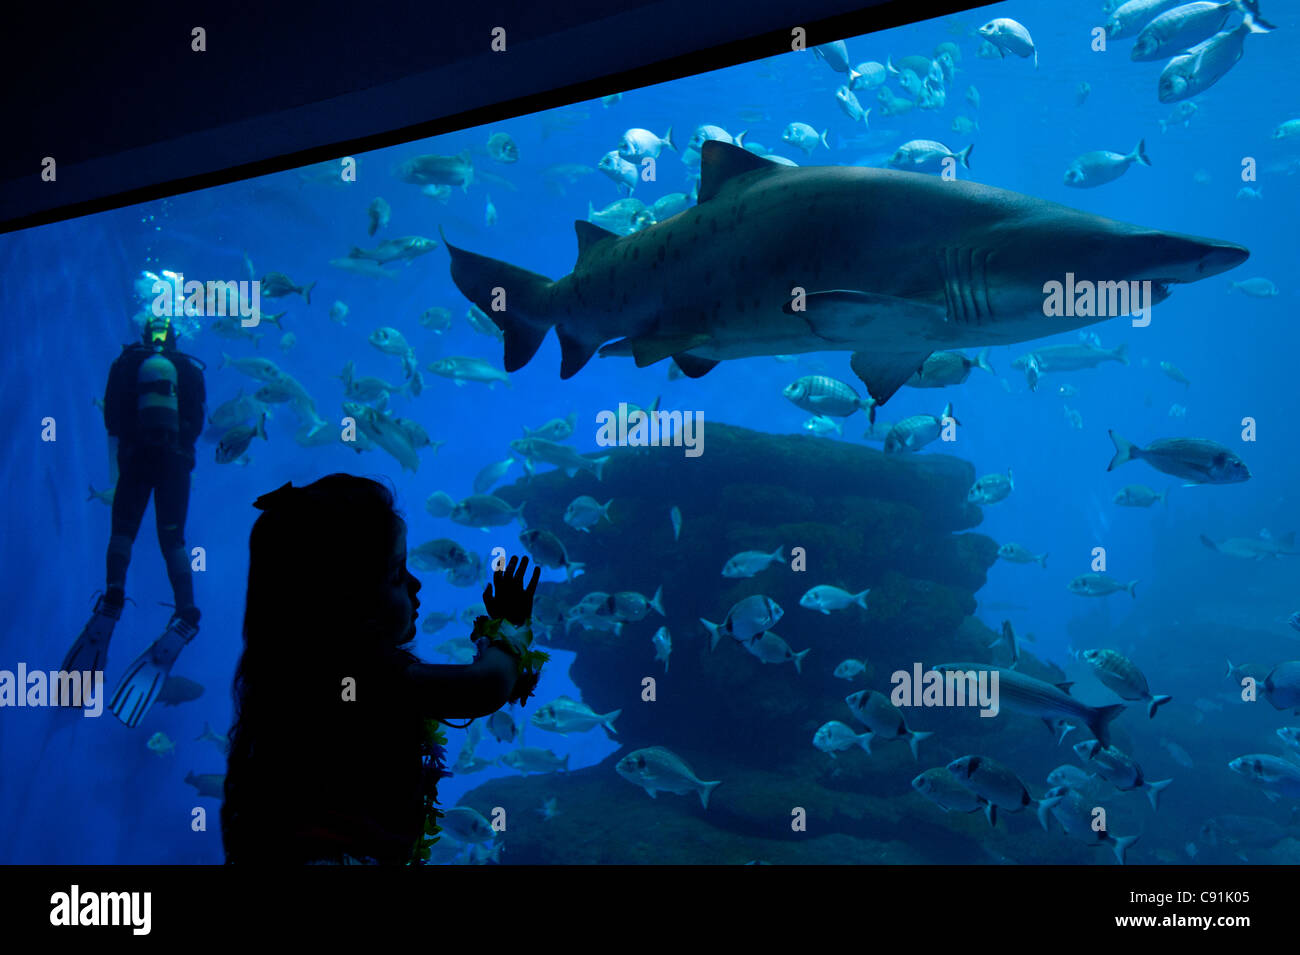 Girl looking at shark, Palma Aquarium, Mallorca, Balearics, Spain - Stock Image